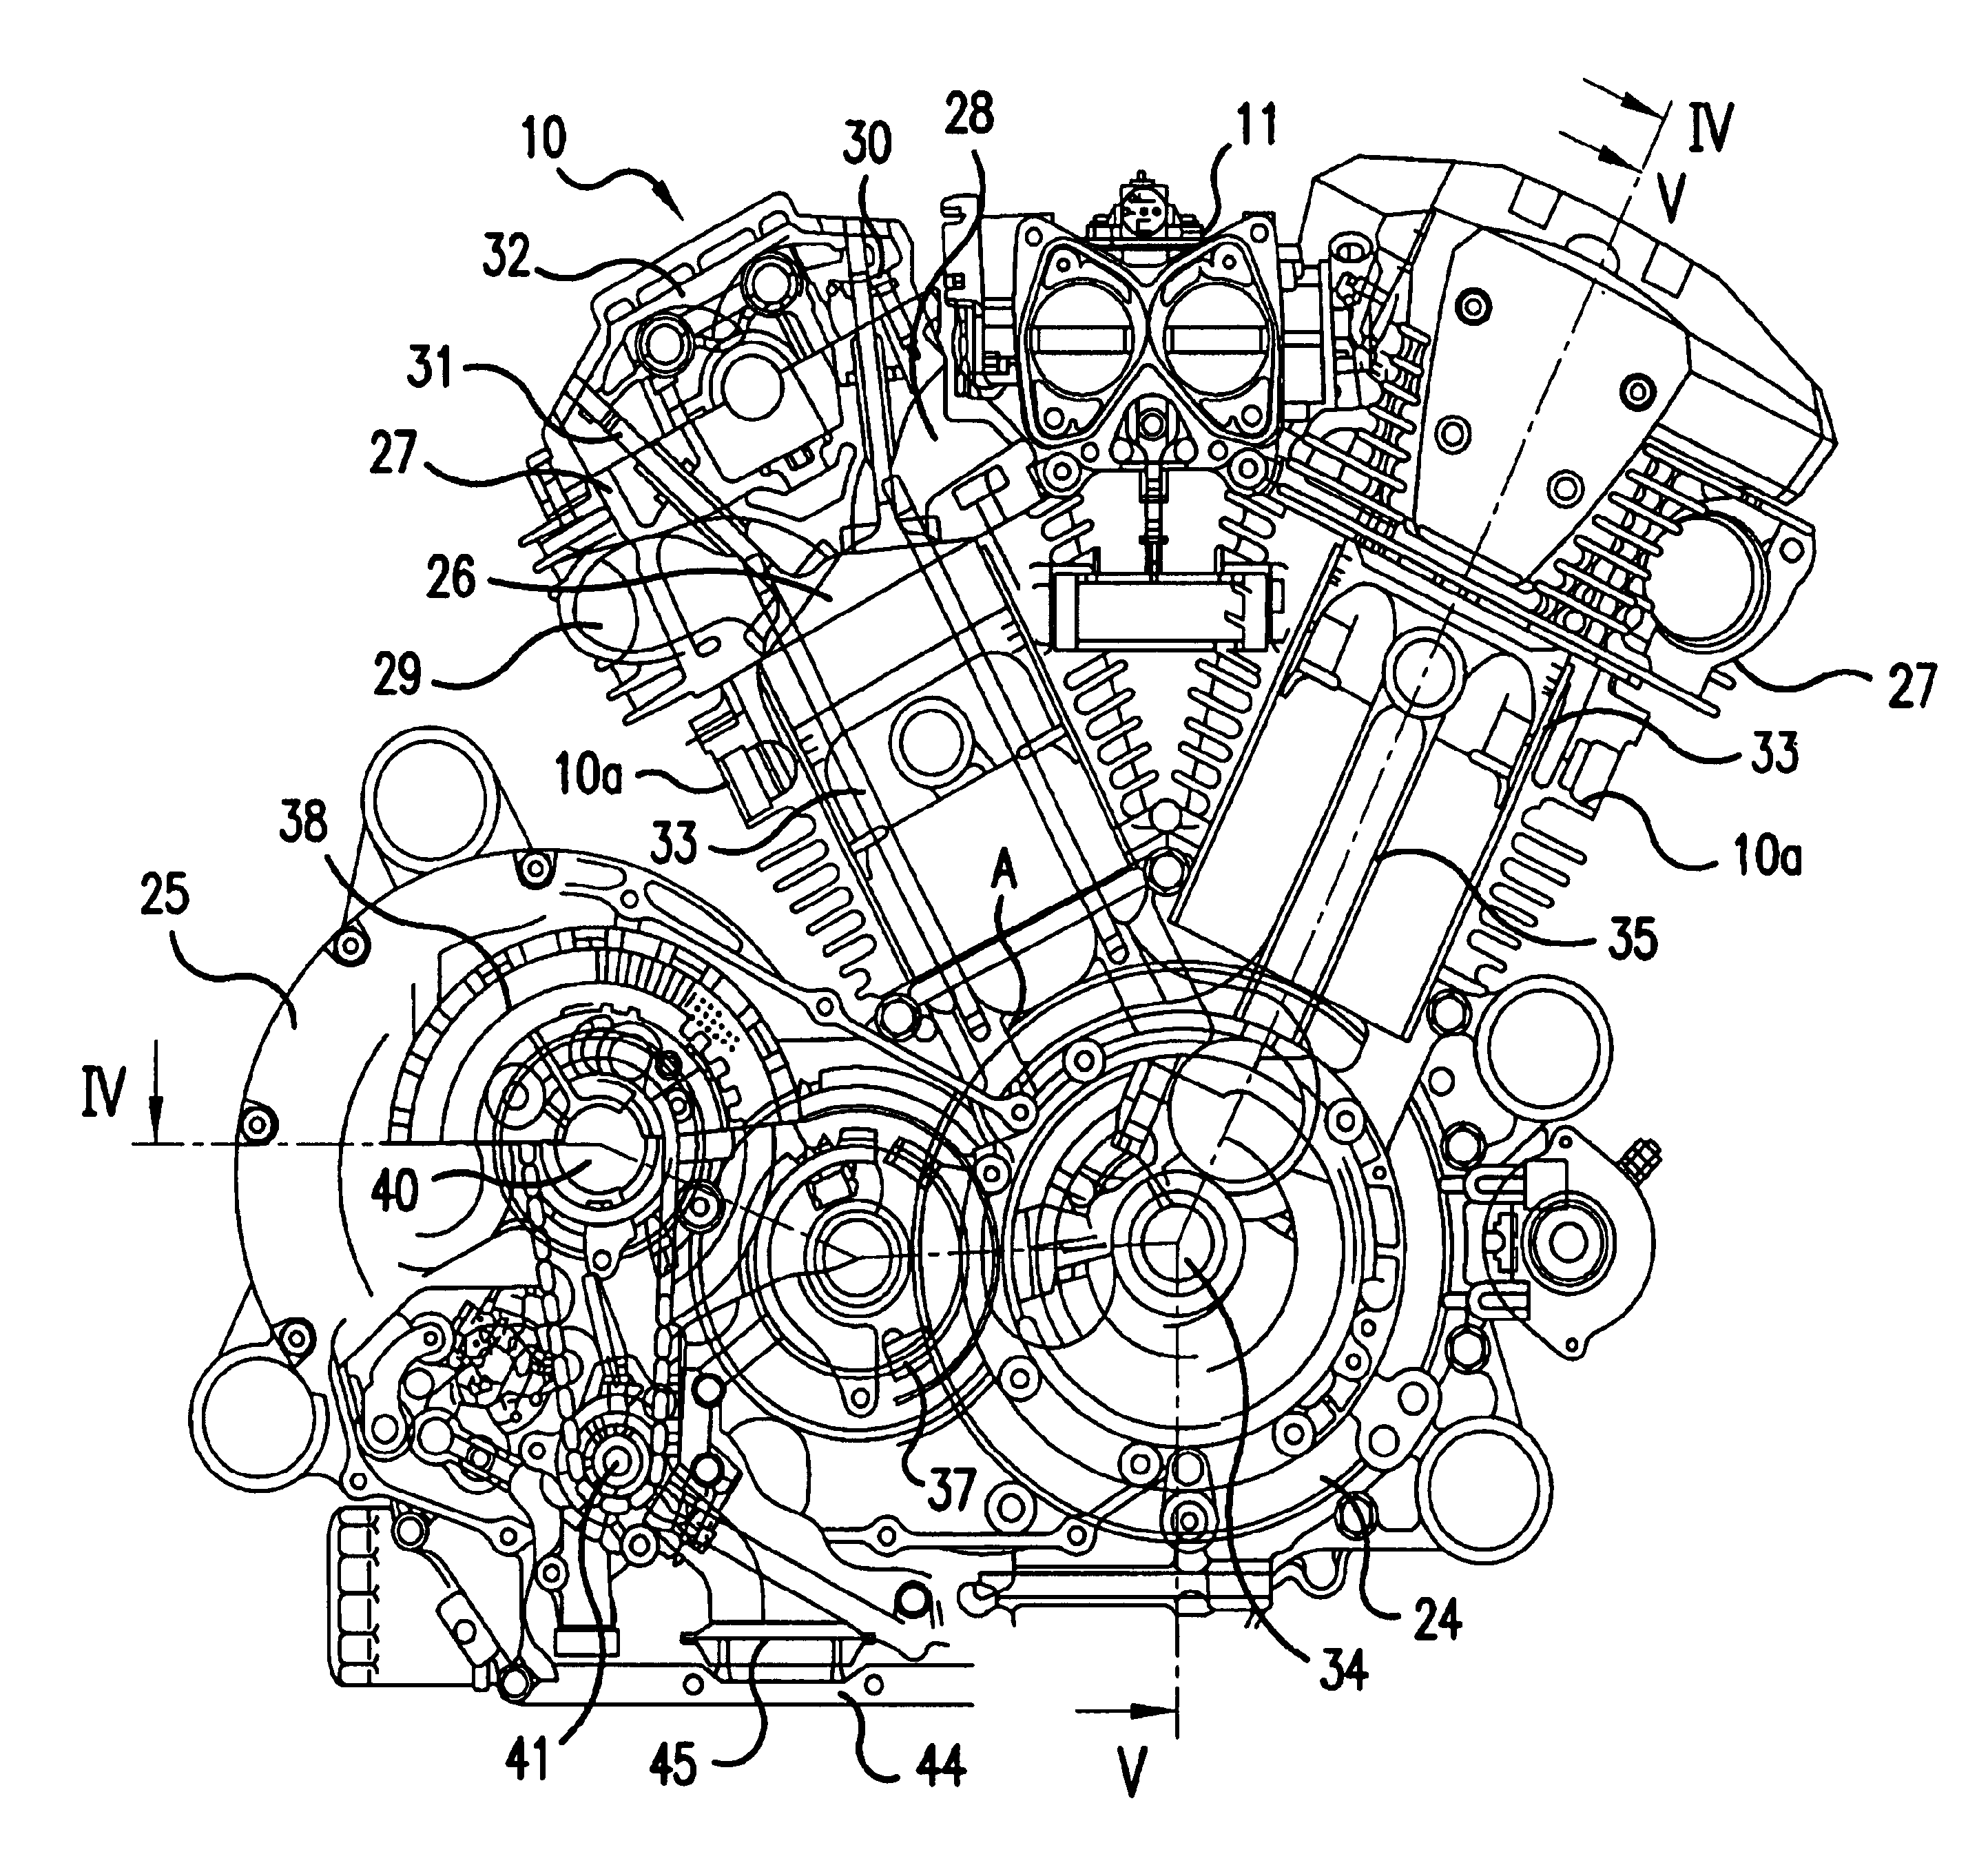 Harley davidson engine png transparent google search objects harley davidson engine png transparent google search pooptronica